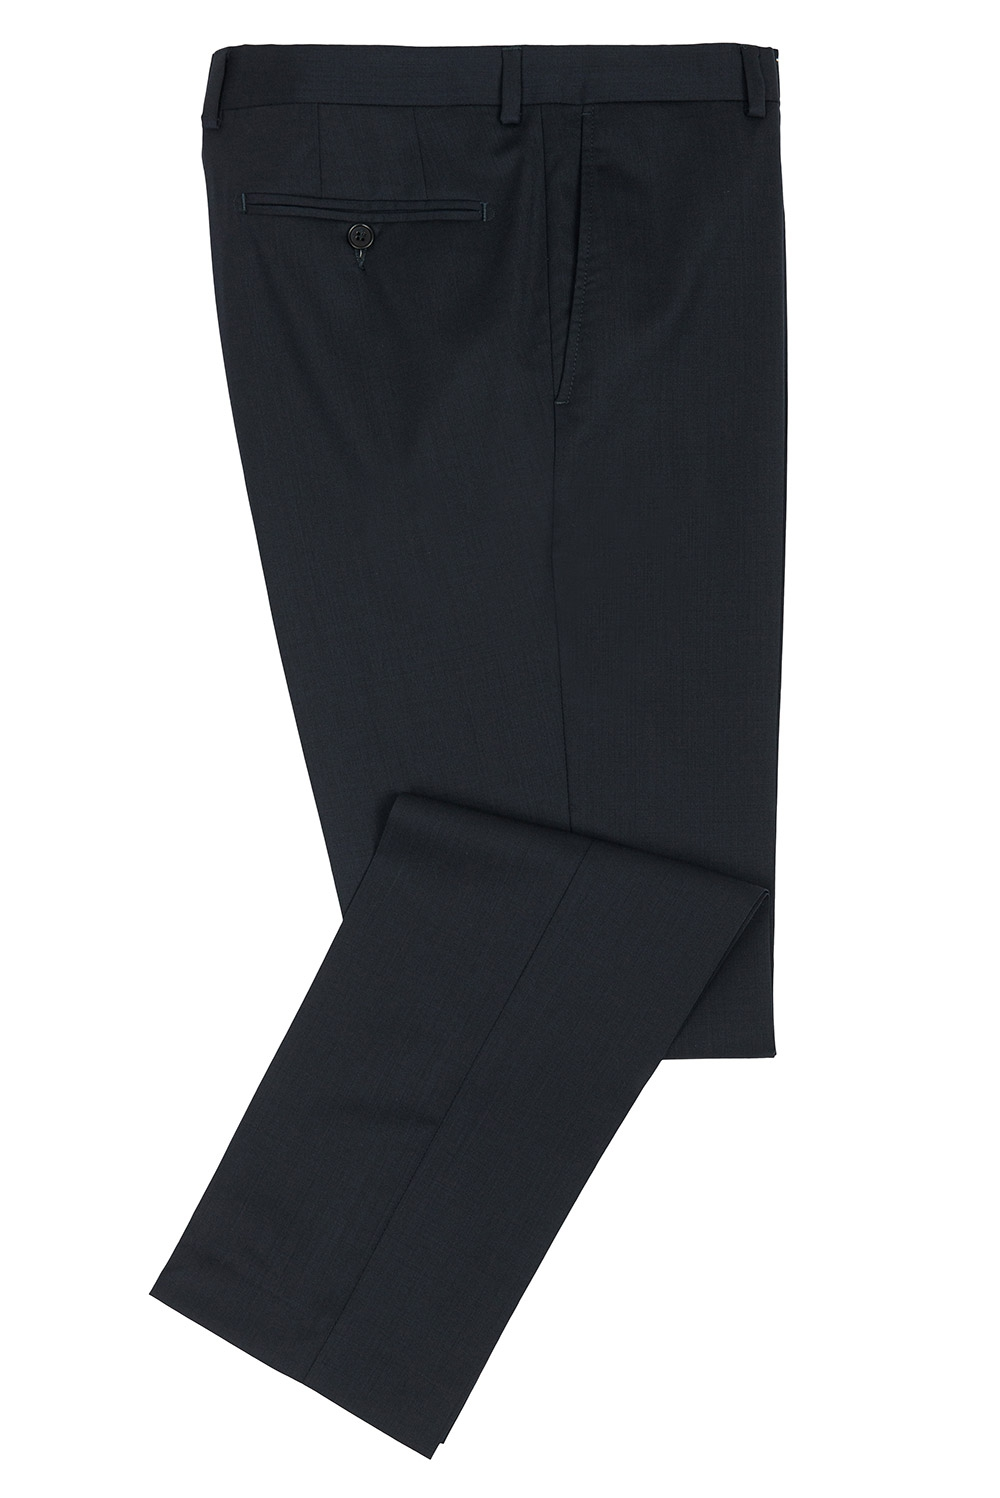 Superslim Navy Plain Trouser 0